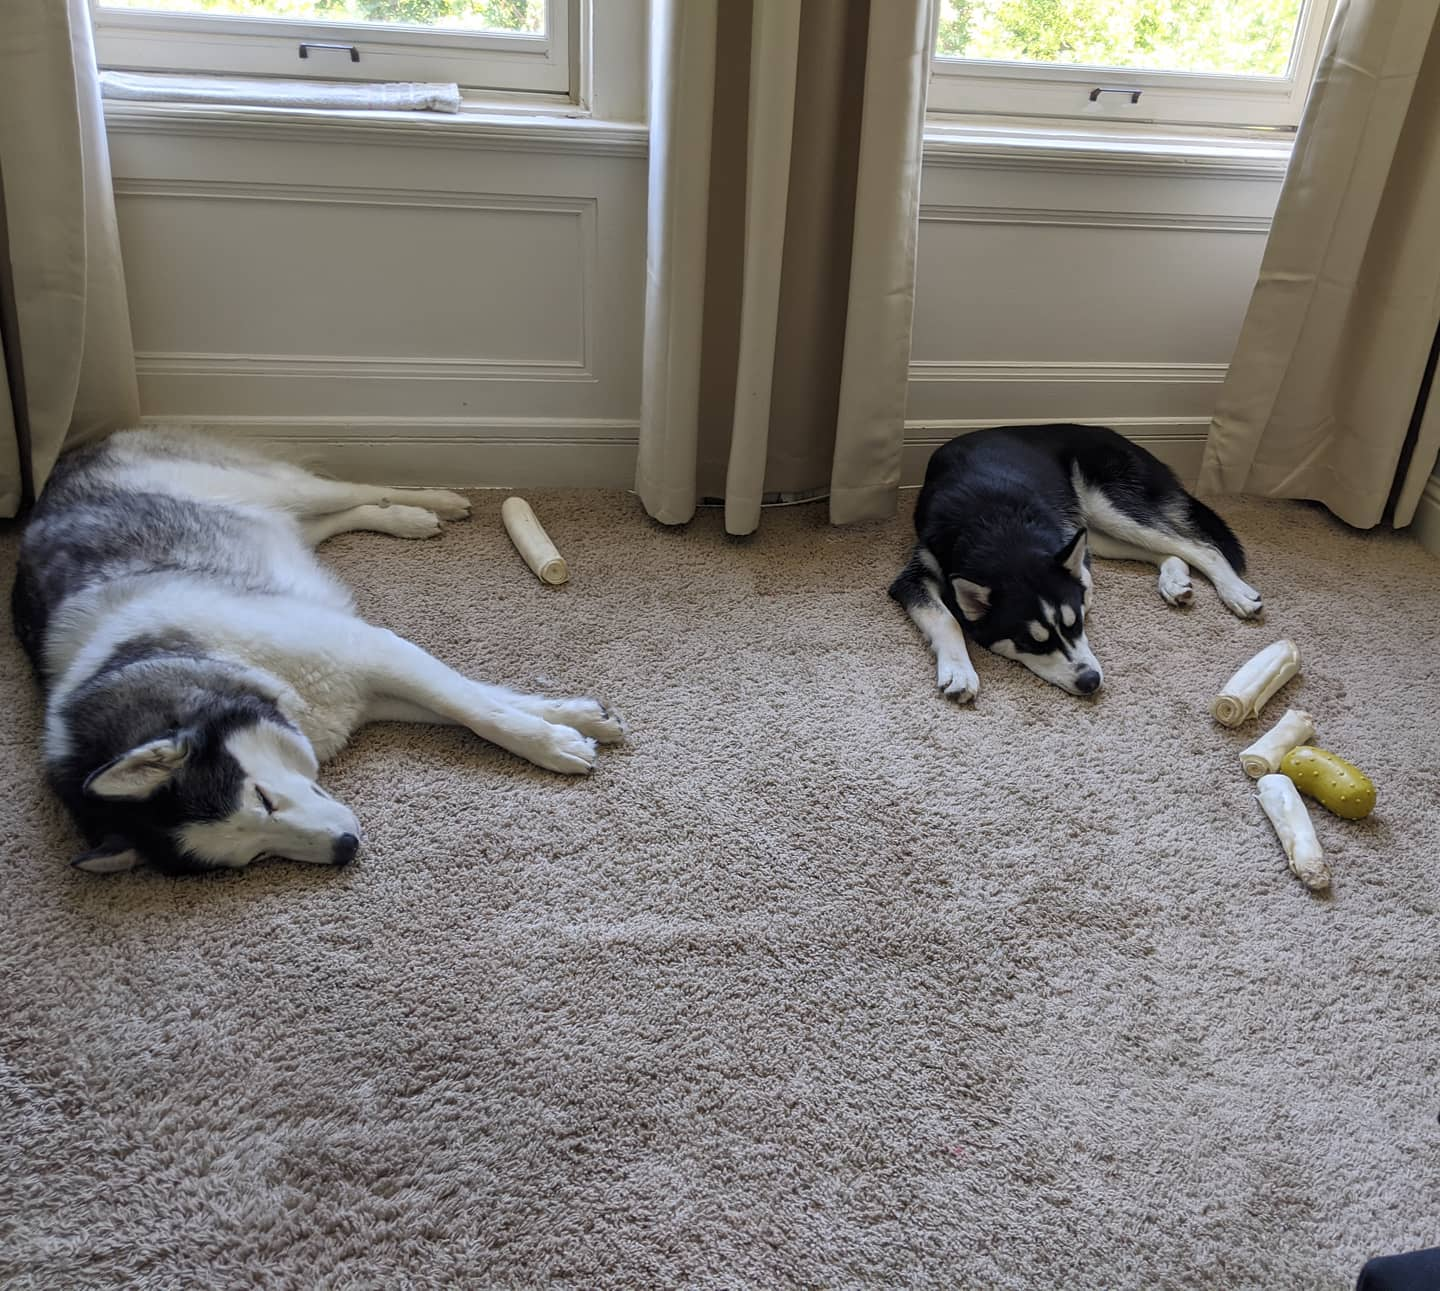 Peace and quiet... Gotta love the fact that Nanuq has hoarded the rawhides and toys though... #stlnanuq #stlloki #huskiesofinstagram #siberianhusky